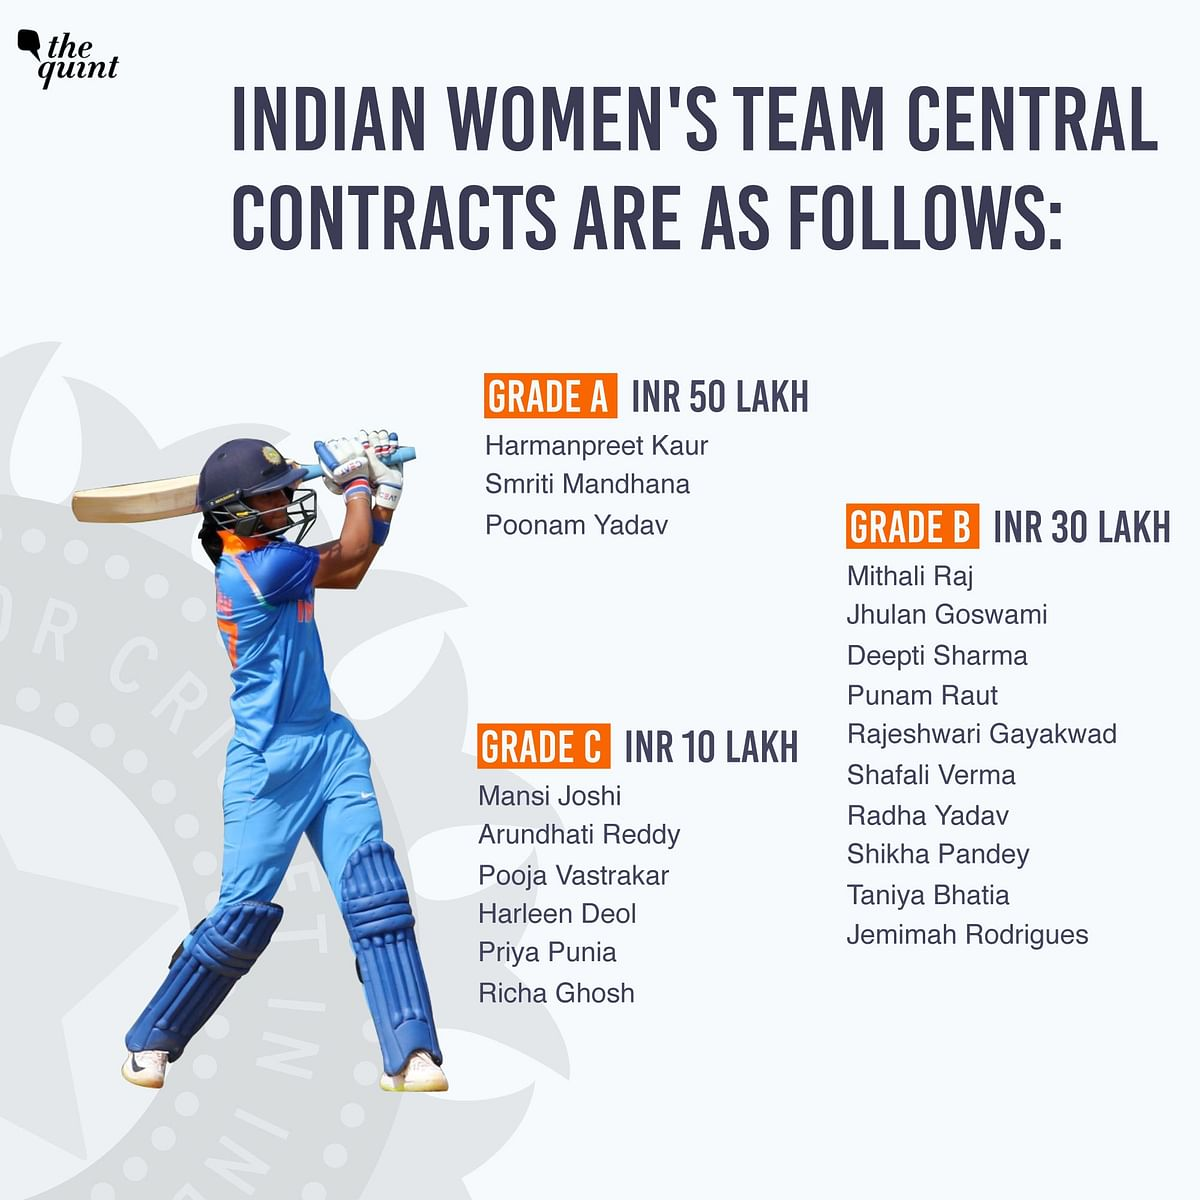 Shafali Verma's promotion was the highlight of India's fresh contracts.